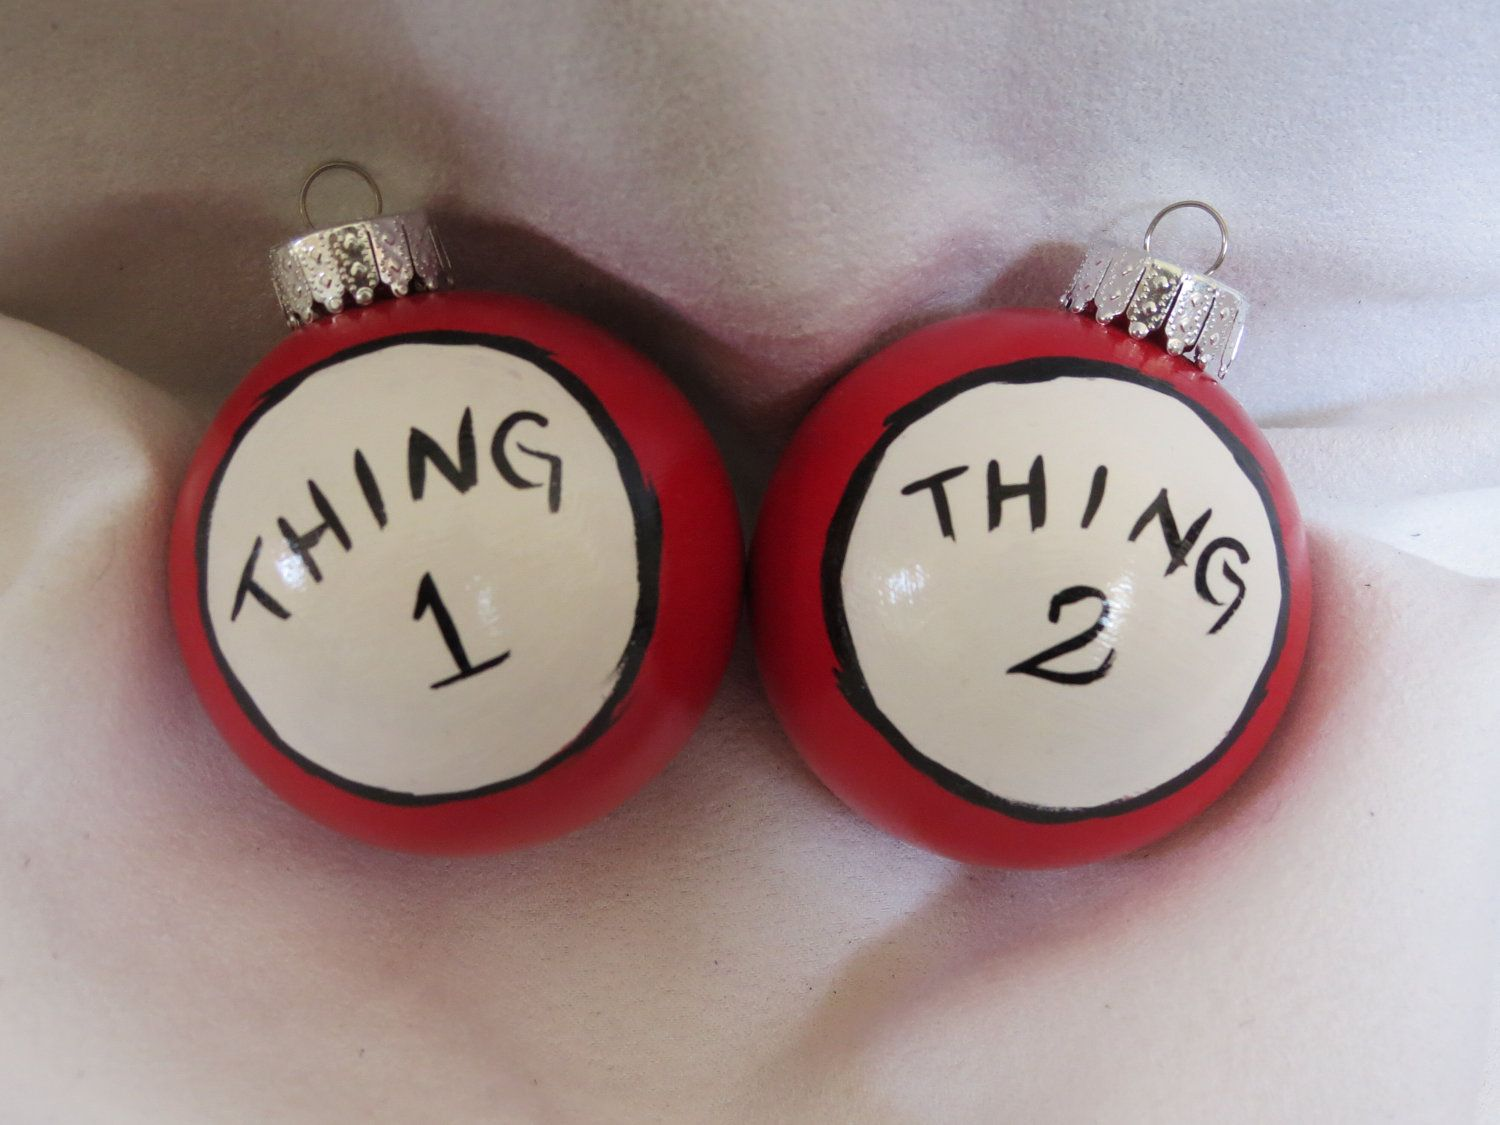 Cat in the hat ornaments - Dr Seuss Thing 1 And Thing 2 Ornaments Thing 1 And Thing 2 Cat In The Hat